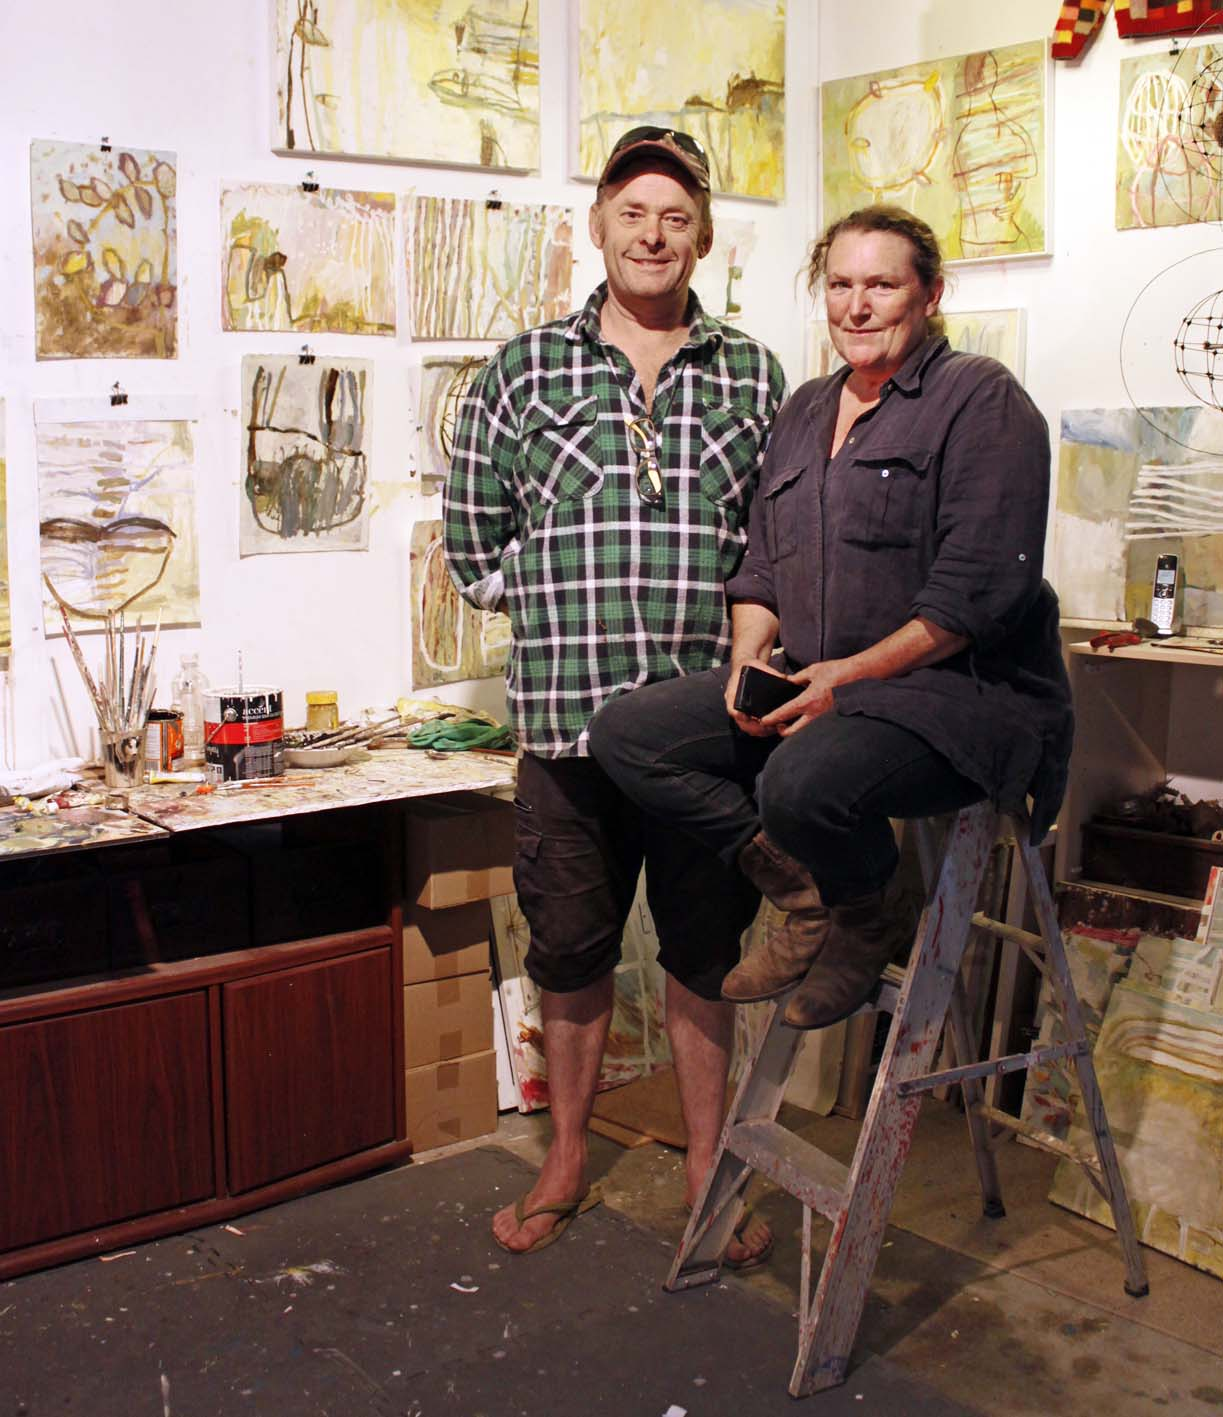 Australian artist studio visit, Jaq Davies and Glenn Hoyle, The Corner Store Gallery, photograph by Madeline Young